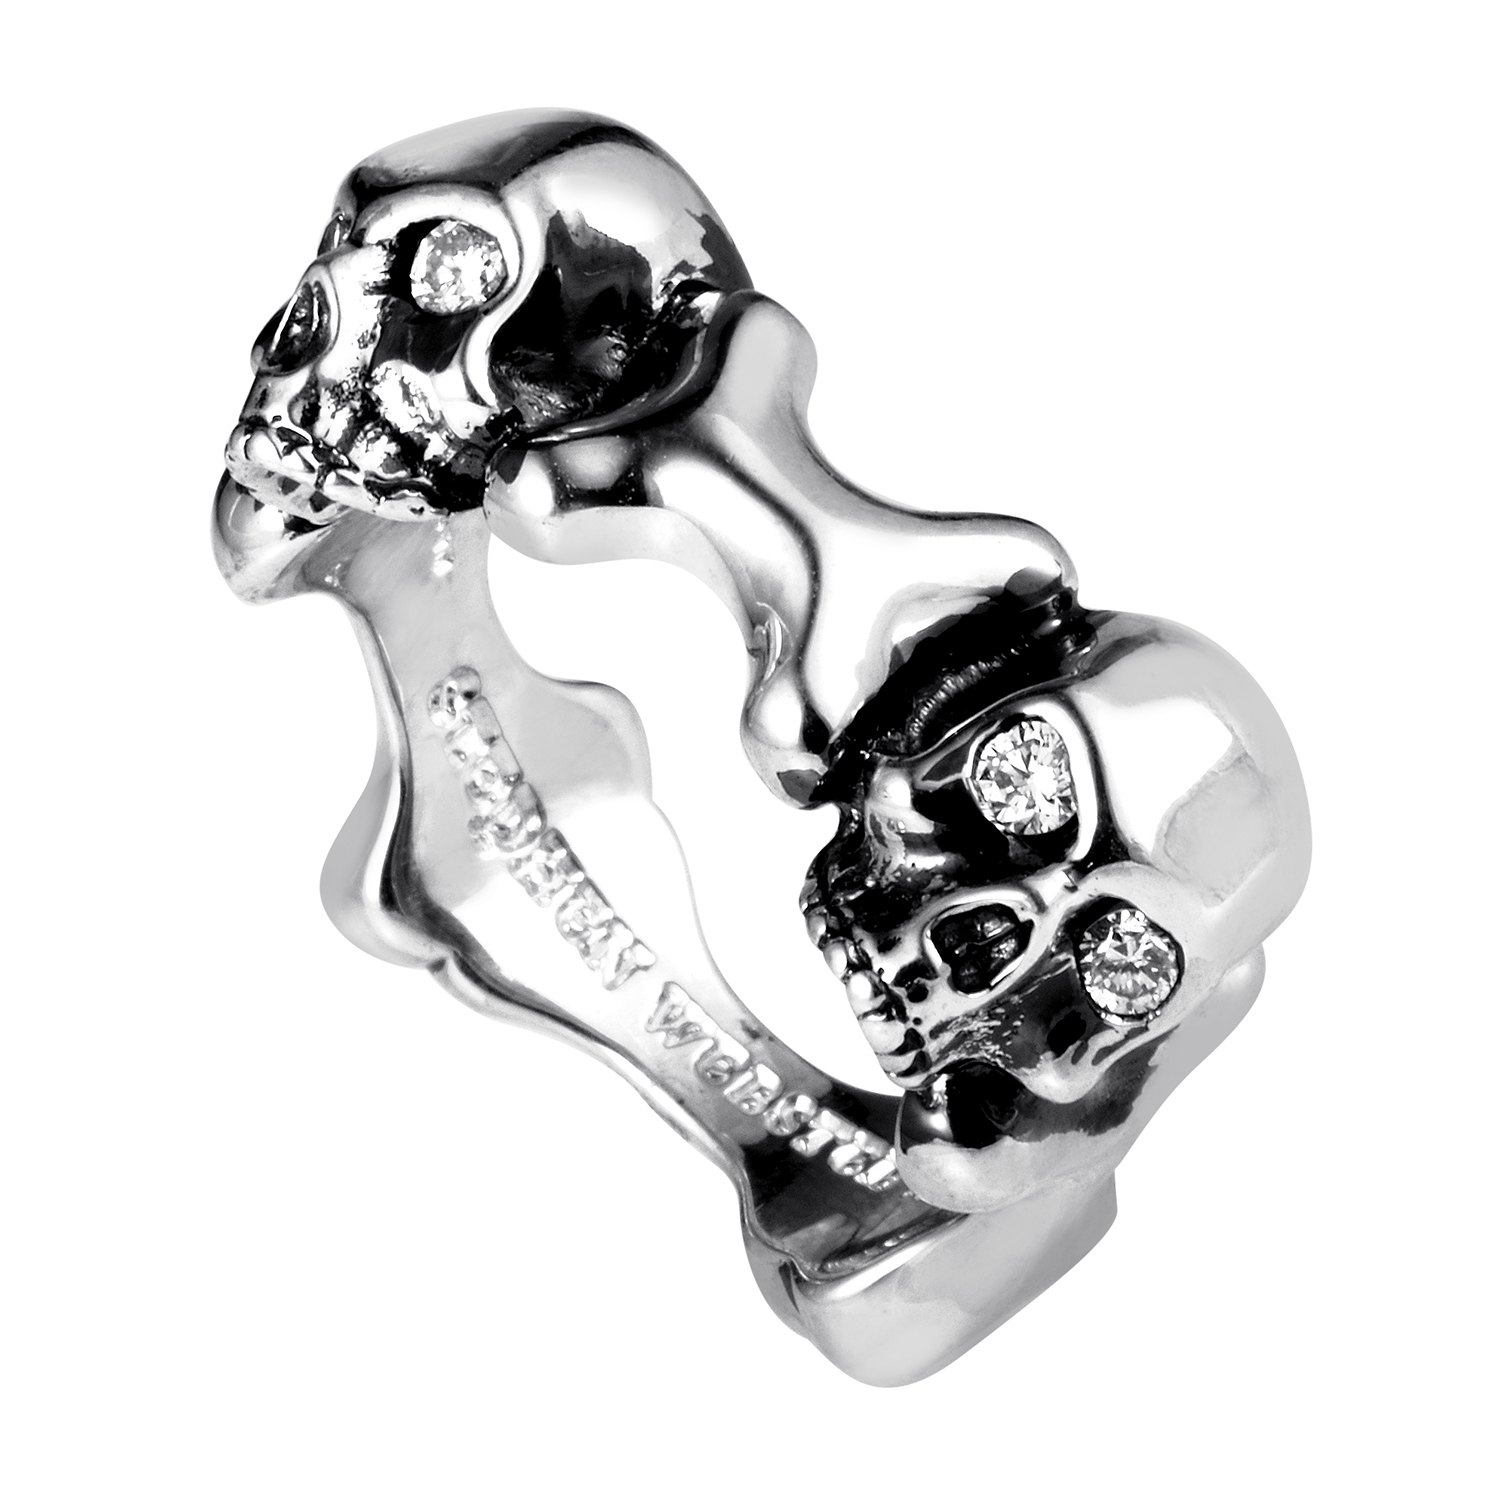 Skull and Bones Sterling Silver Diamond Ring 3005570